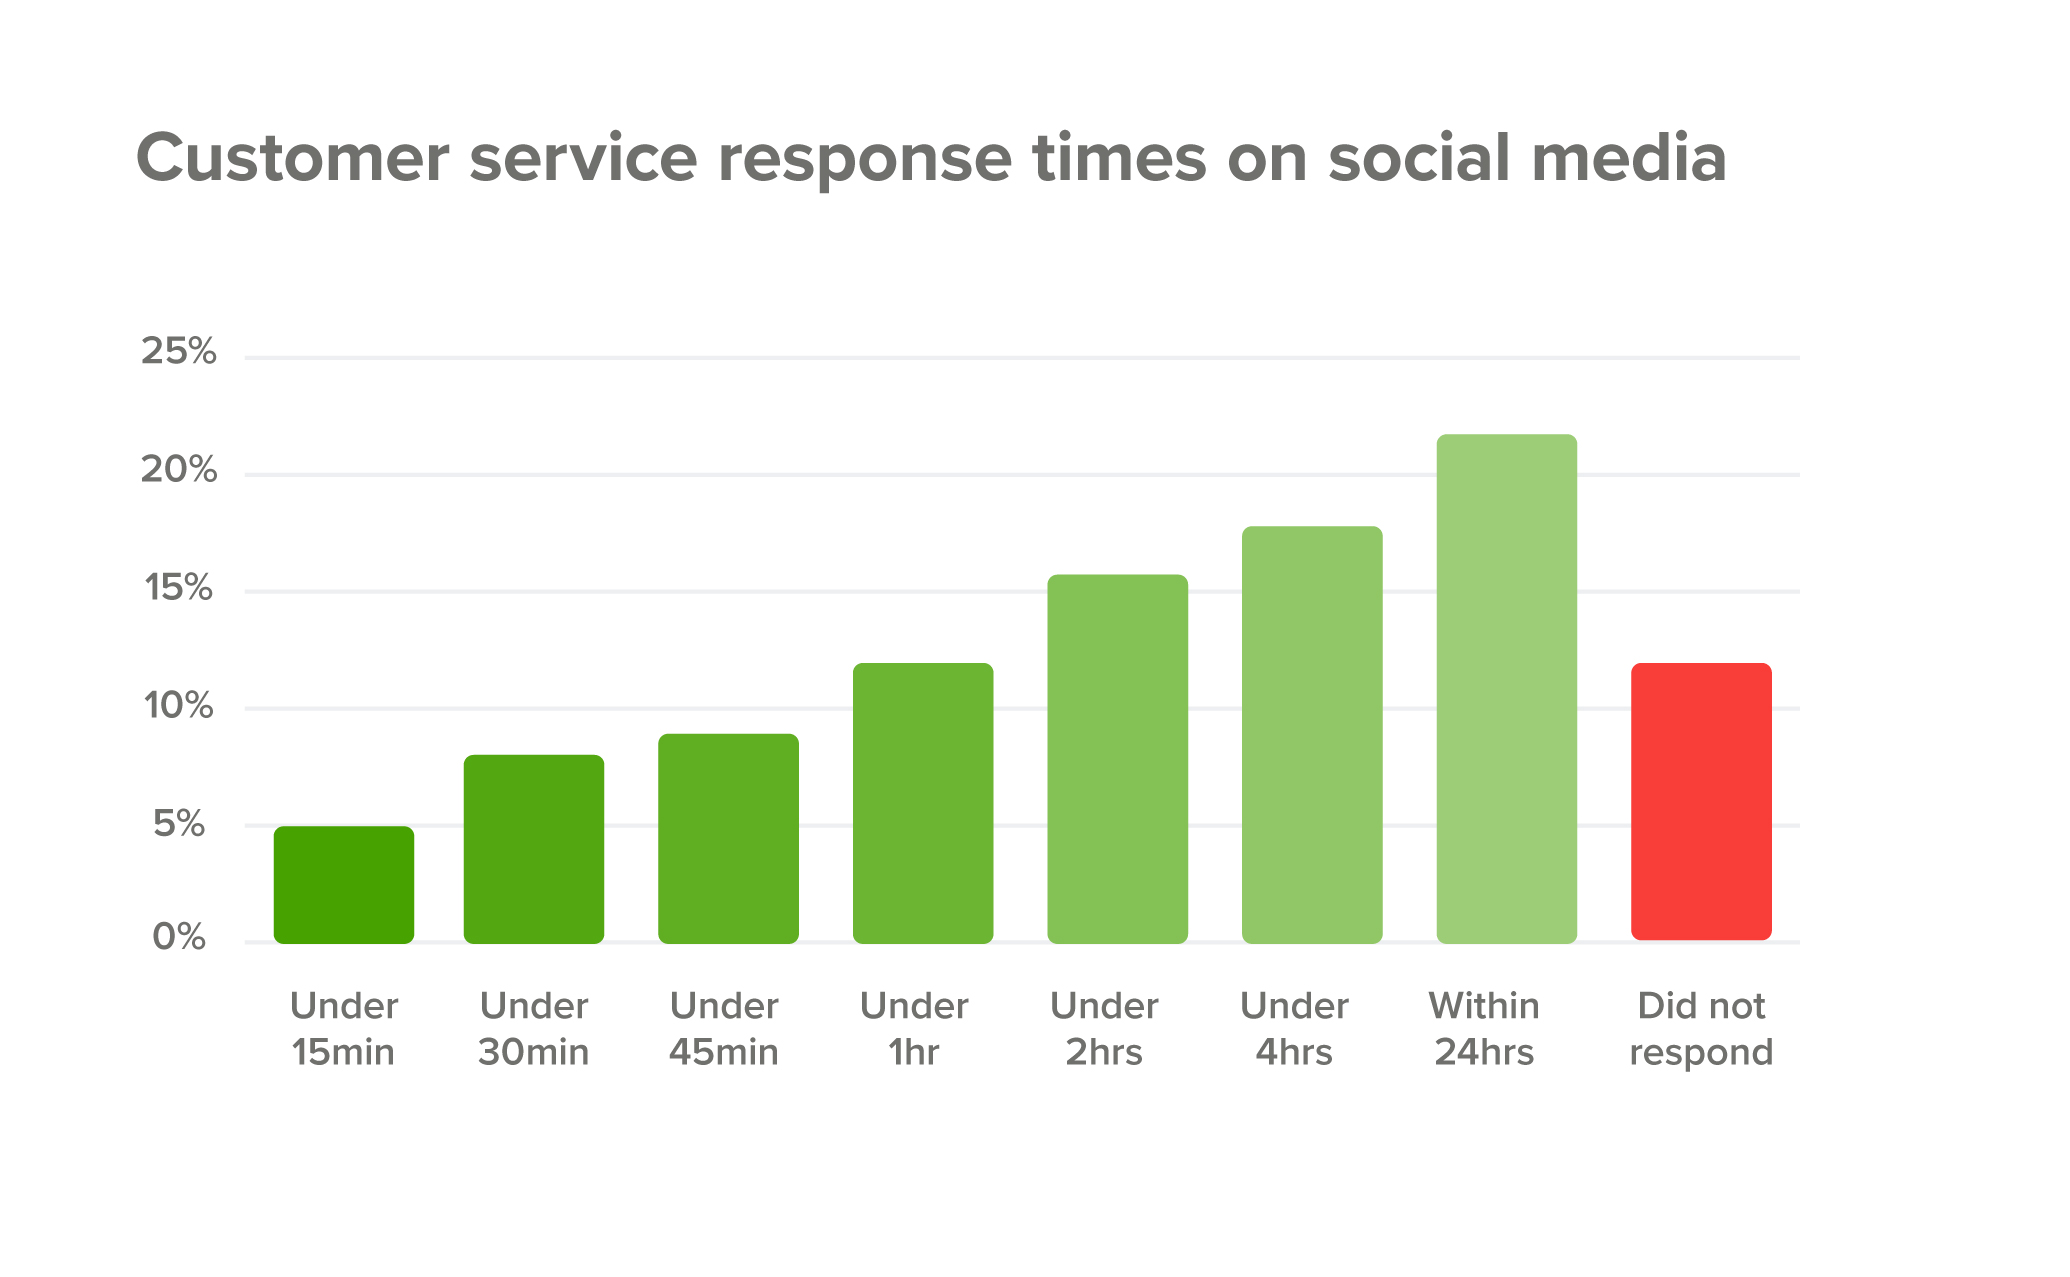 Customer service response times on social media